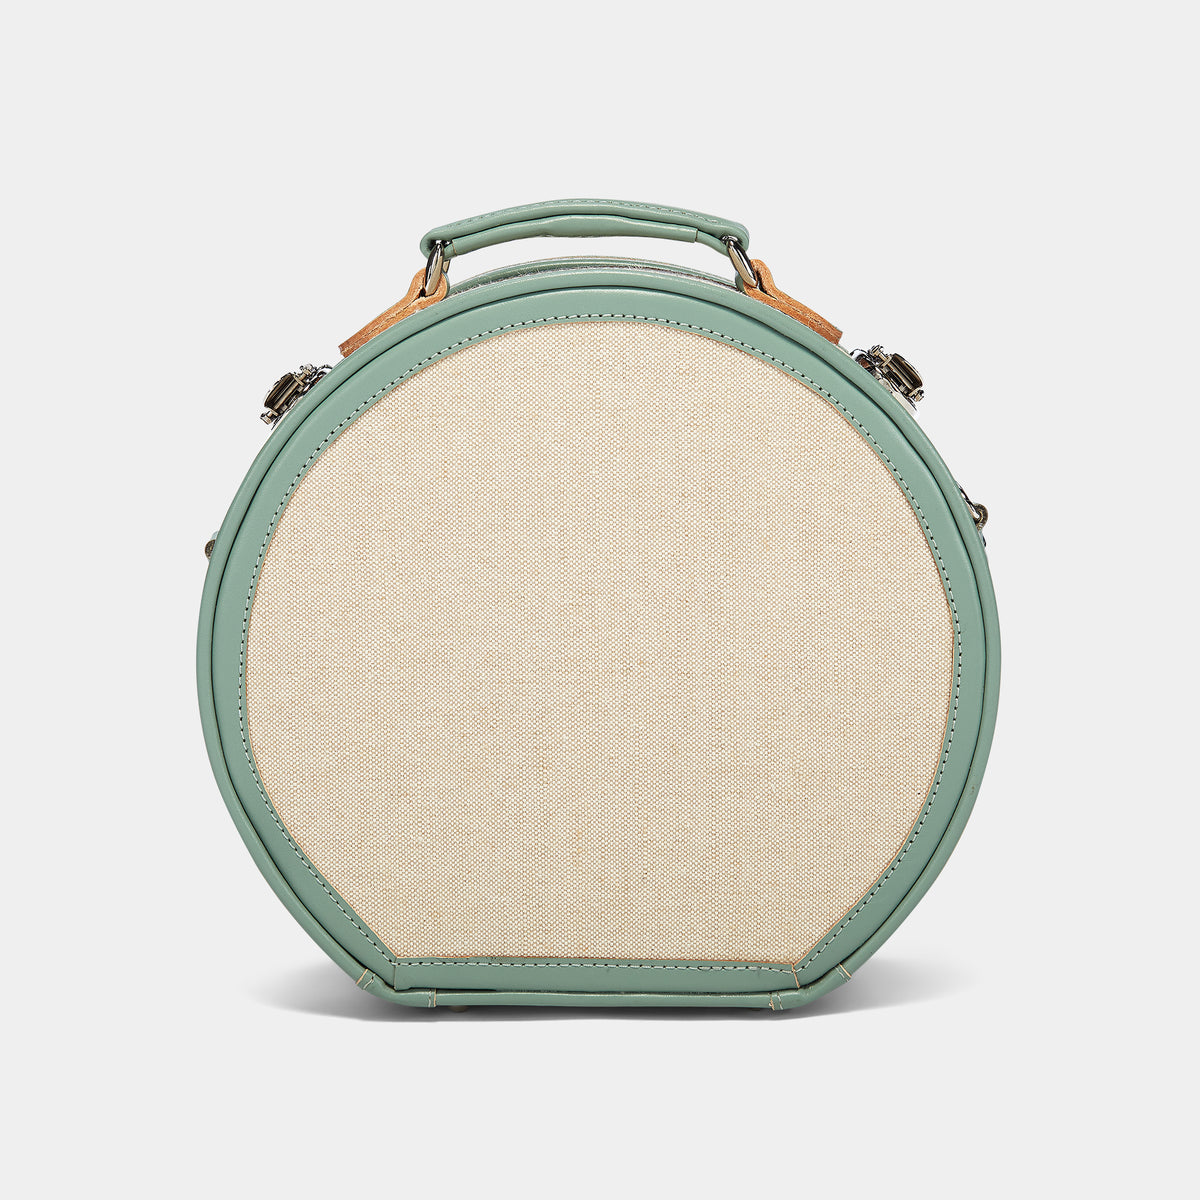 The Editor Hatbox Small in Seagreen - Hat Box Luggage - Exterior Back with Shoulder Strap